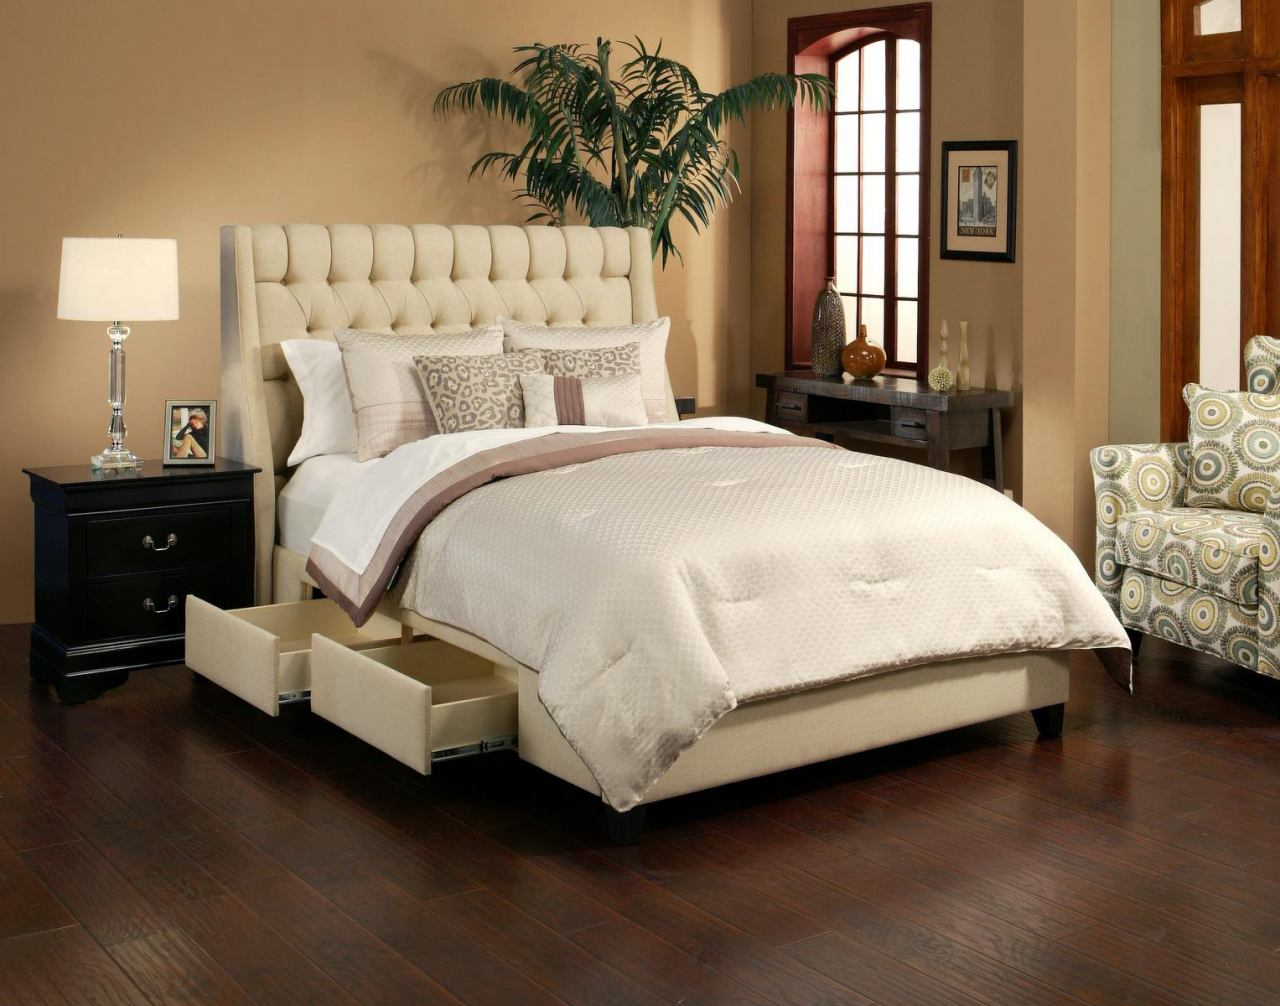 Seahawk Designs Cambridge Complete 4 Drawer Queen Bed in Wheat 22603